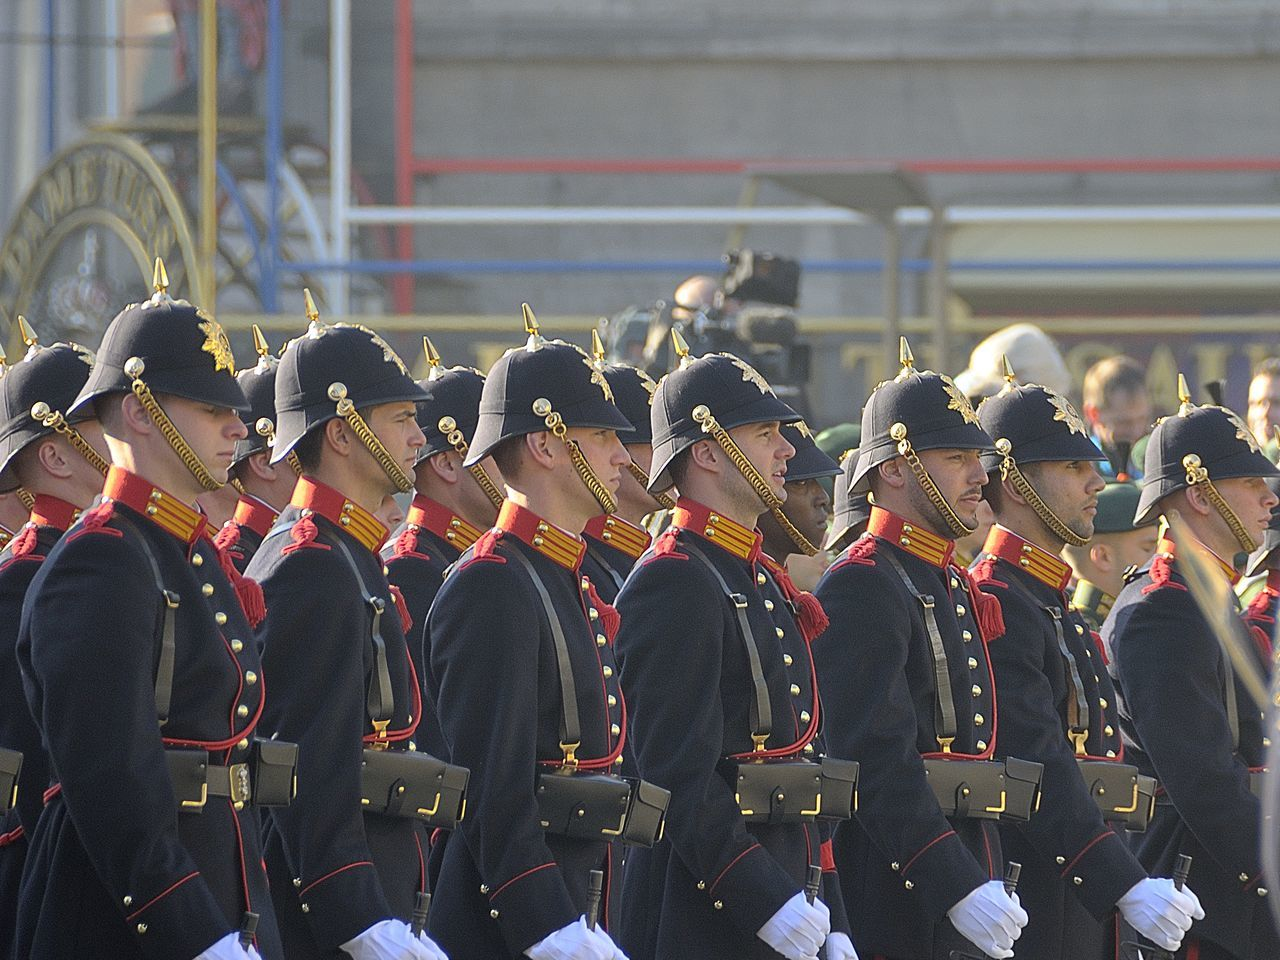 large group of people, uniform, real people, military parade, military uniform, men, marching band, red, marching, occupation, day, parade, togetherness, army soldier, celebration, student, outdoors, people